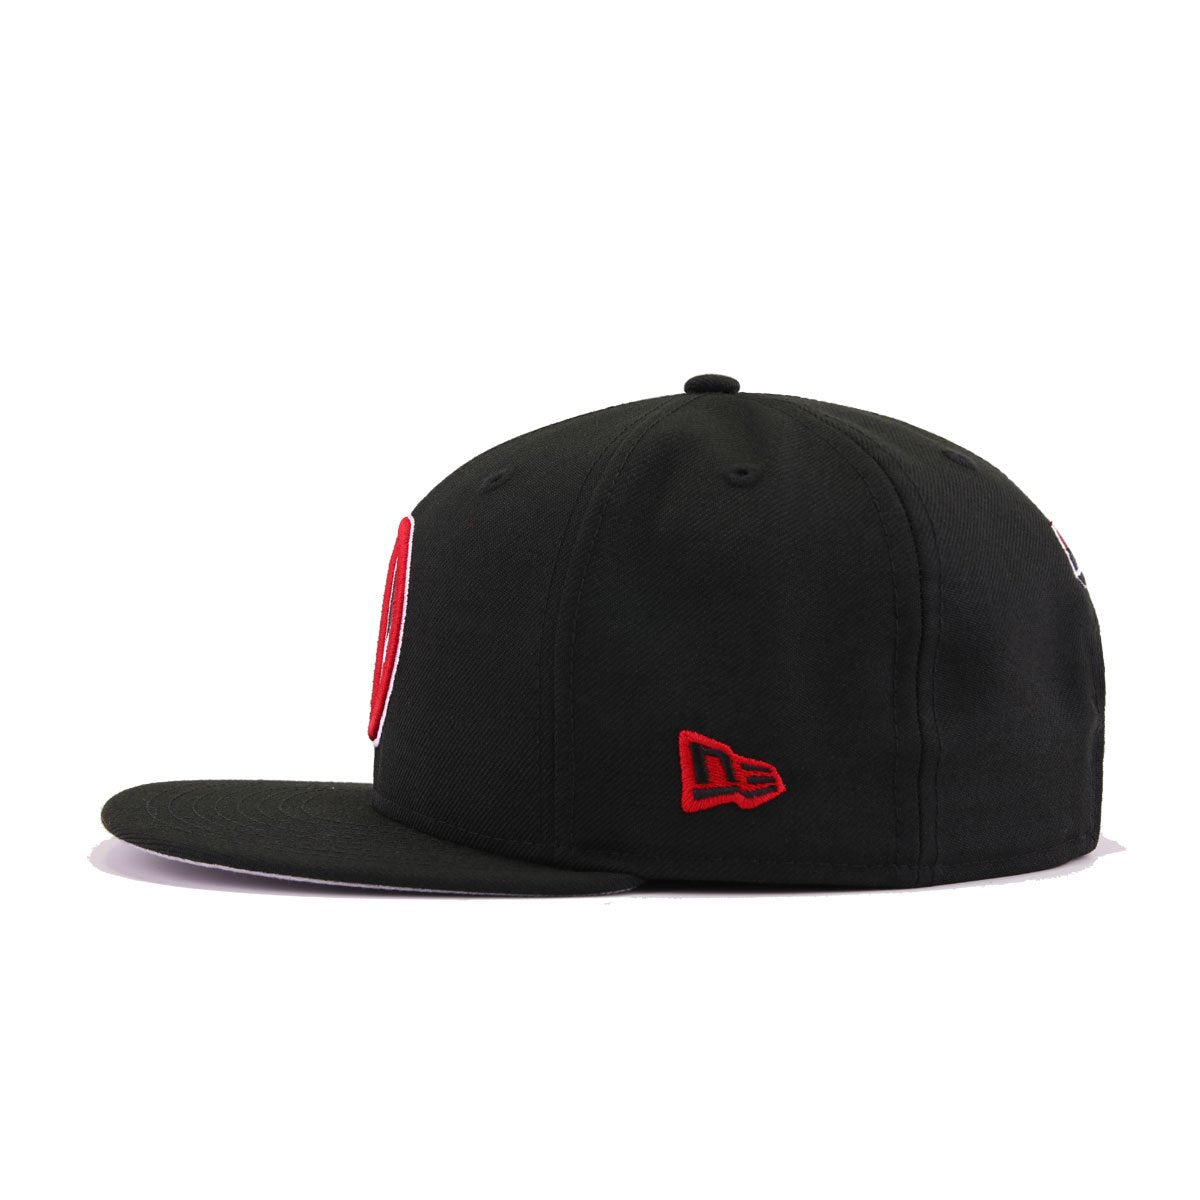 Marvel Comics Deadpool Black Scarlet New Era 9Fifty Snapback